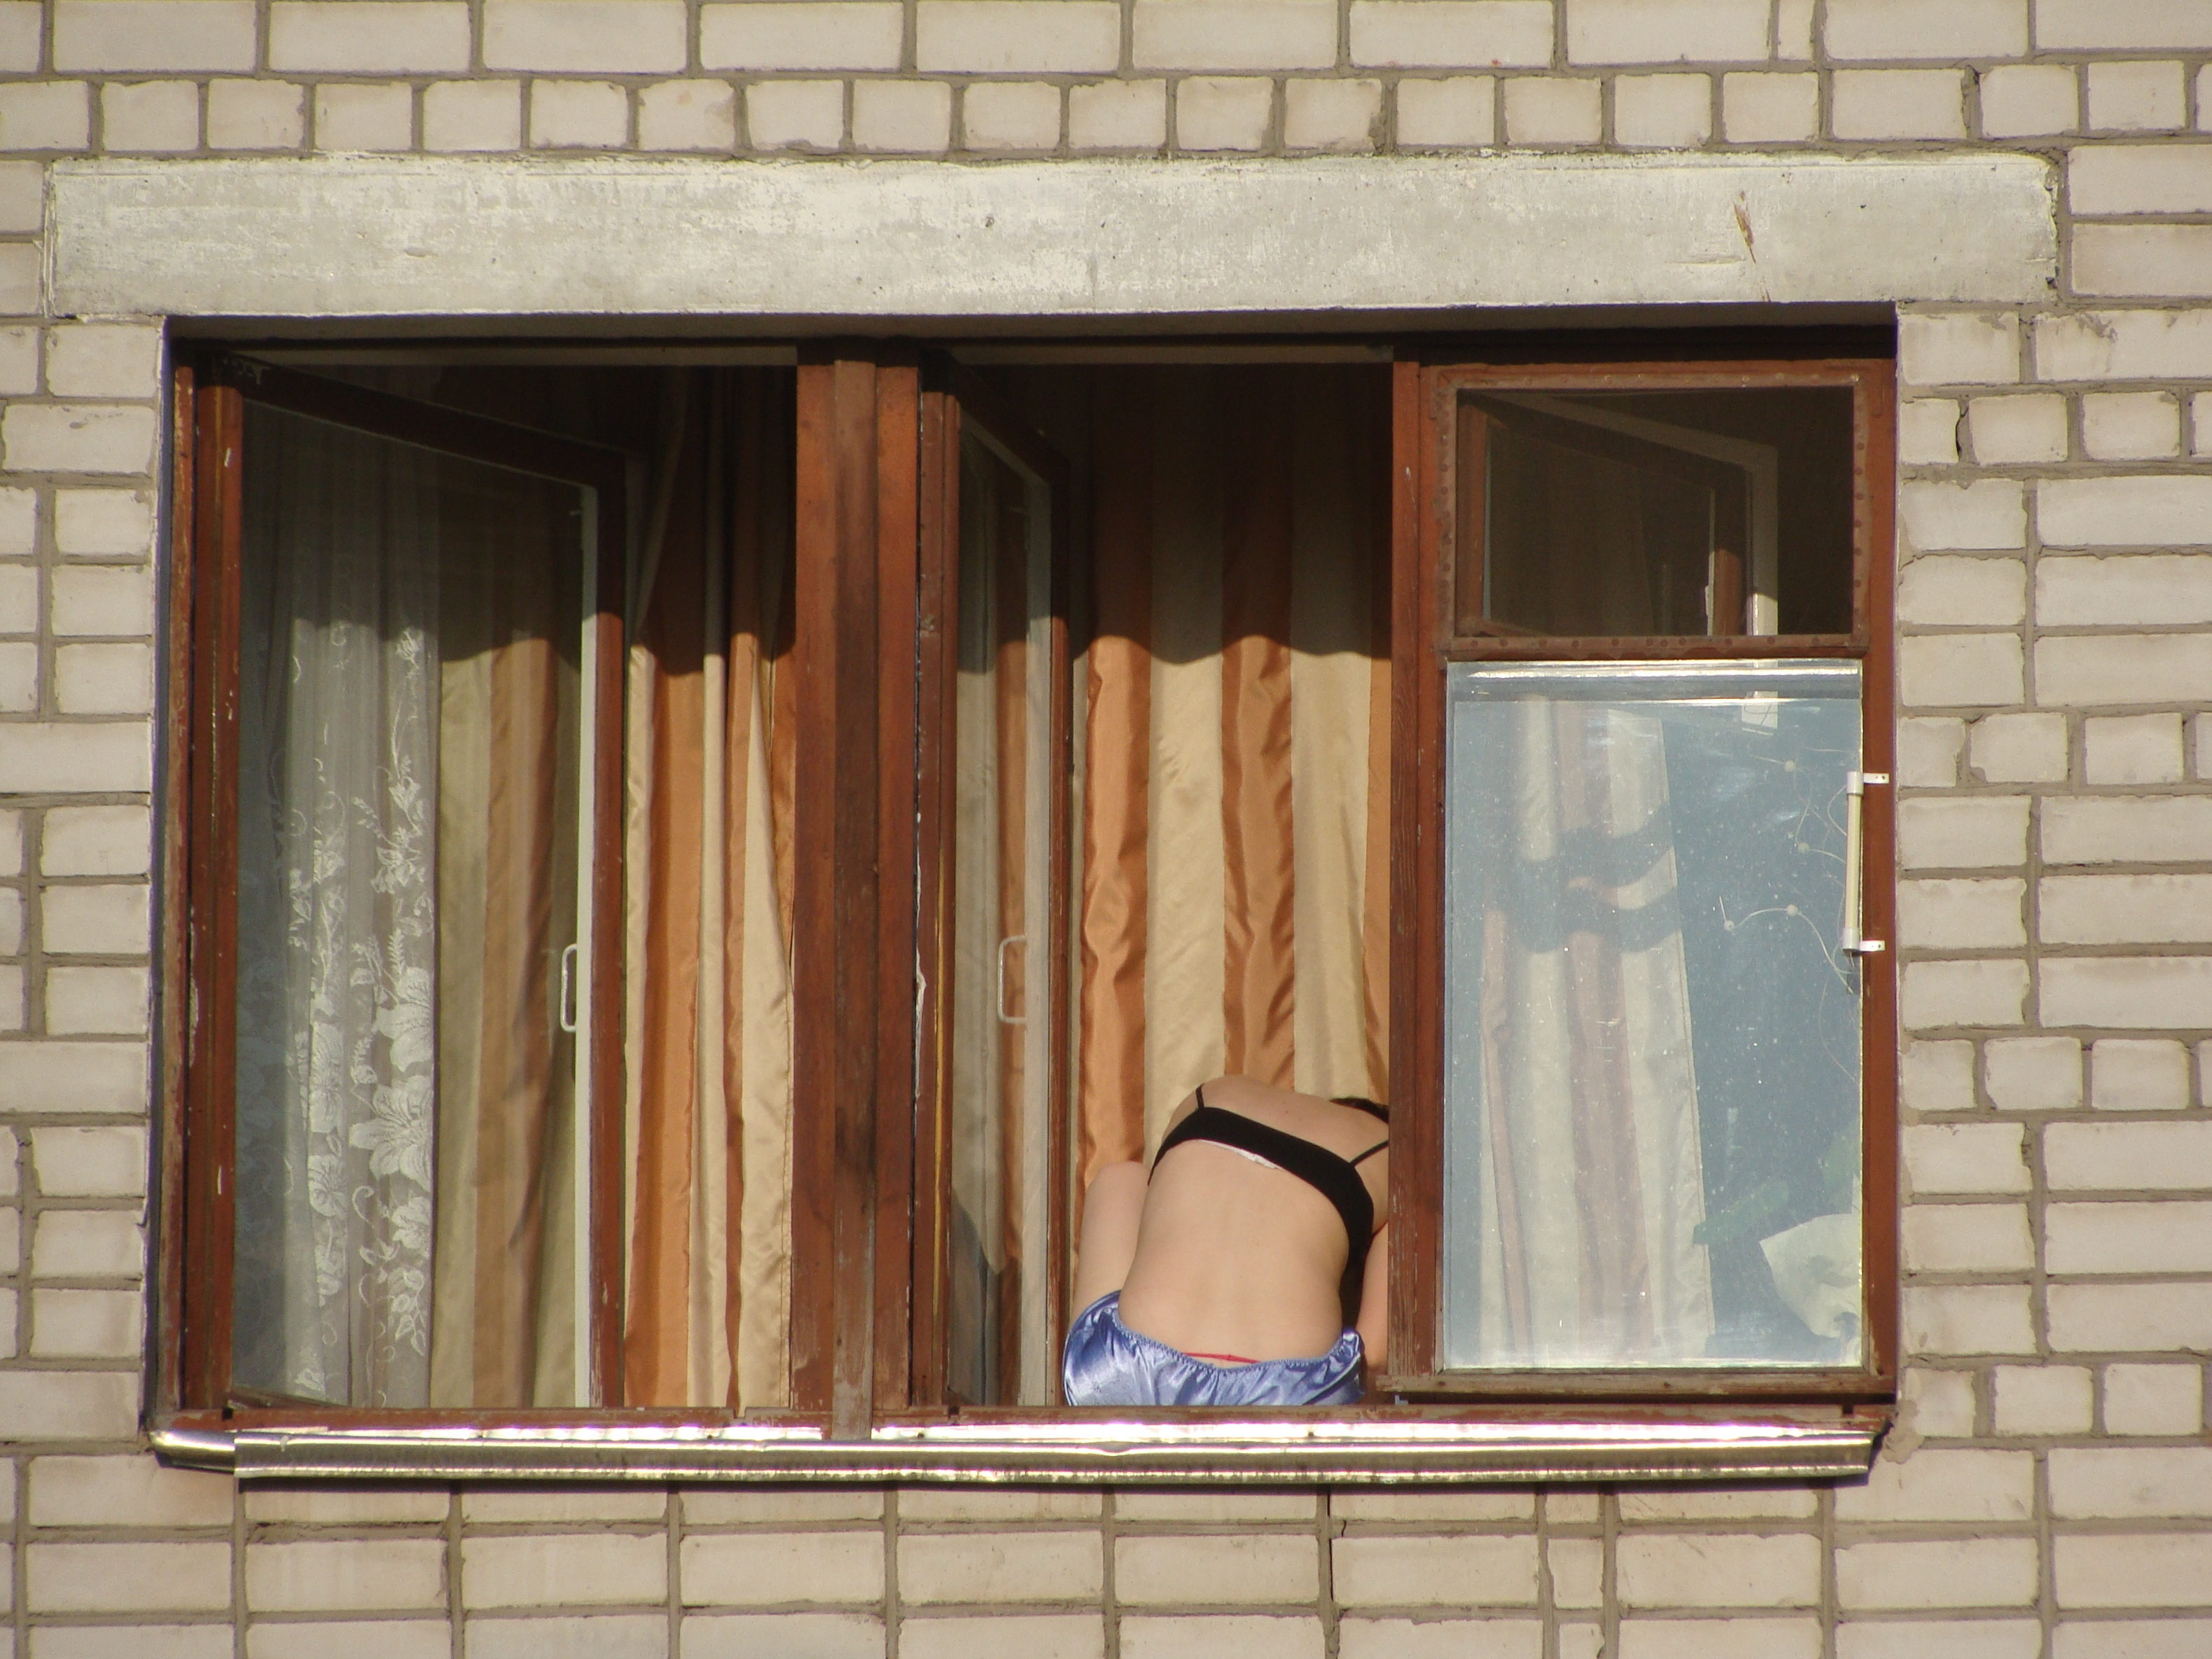 File:Girl Sitting On The Windowsill (01).JPG